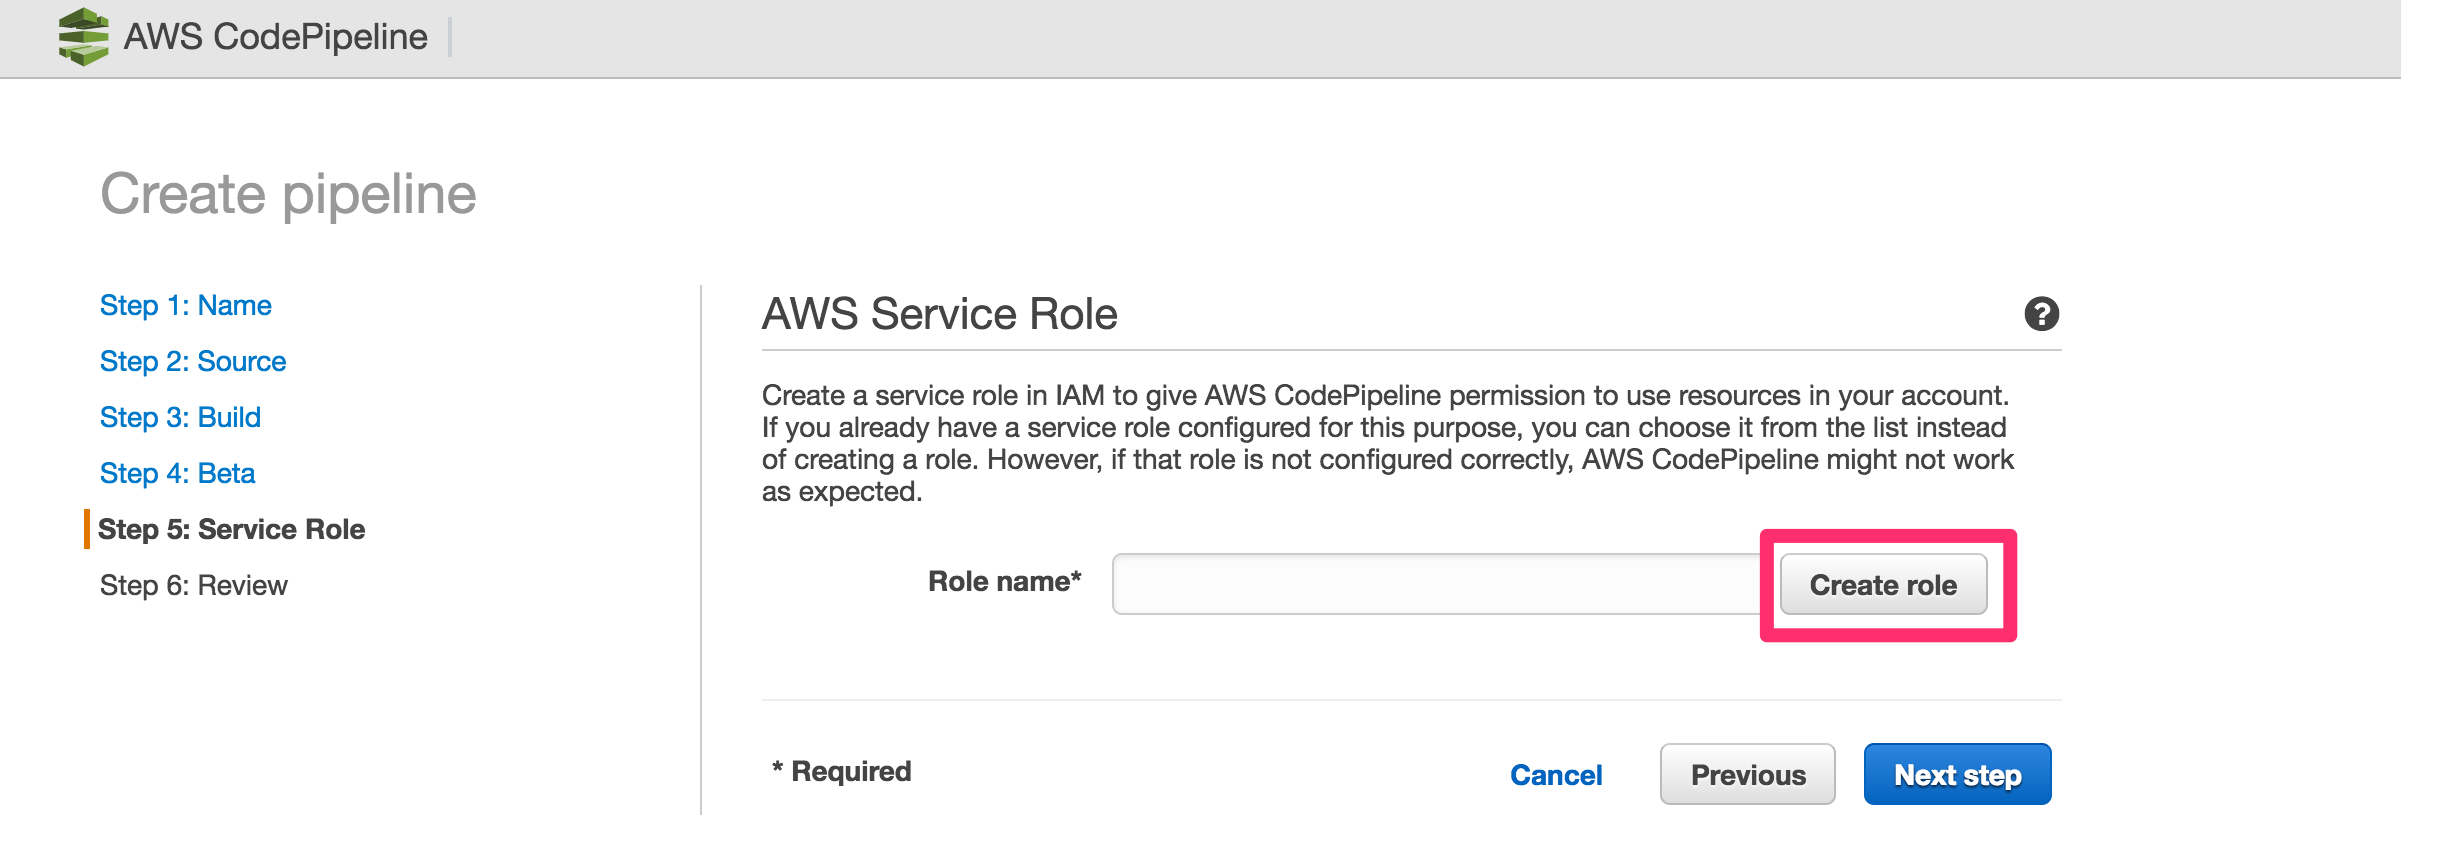 AWS_CodePipeline_Management_Console 6